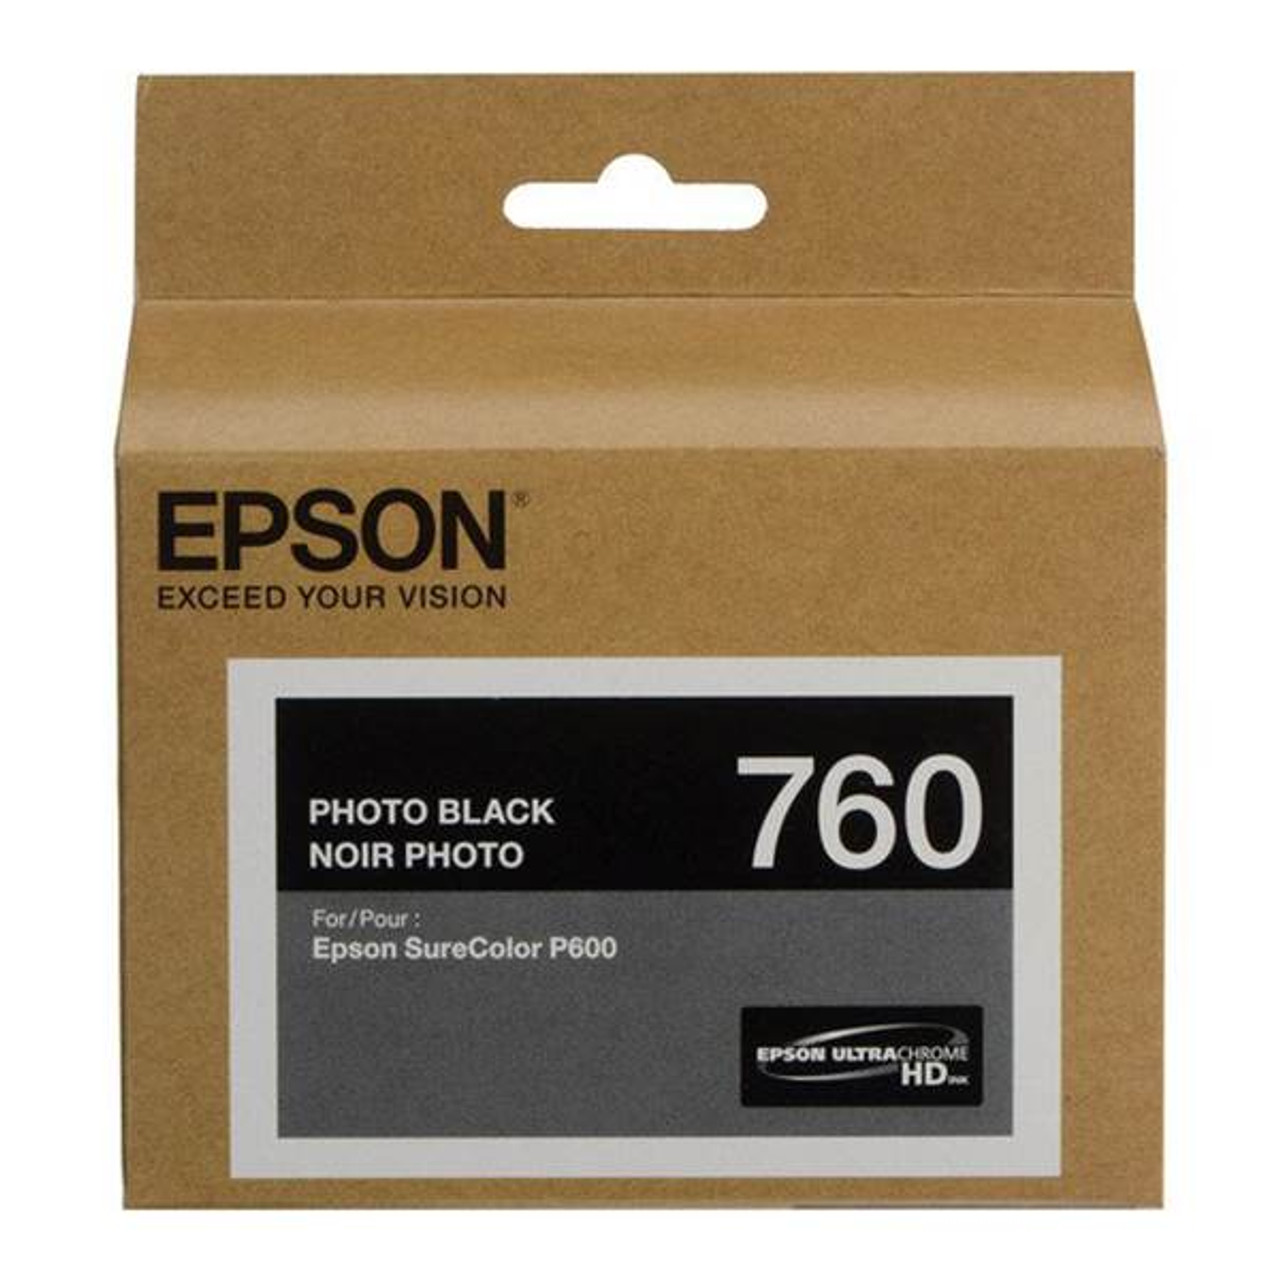 Image for Epson 760 UltraChrome HD Photo Black Ink Cartridge CX Computer Superstore